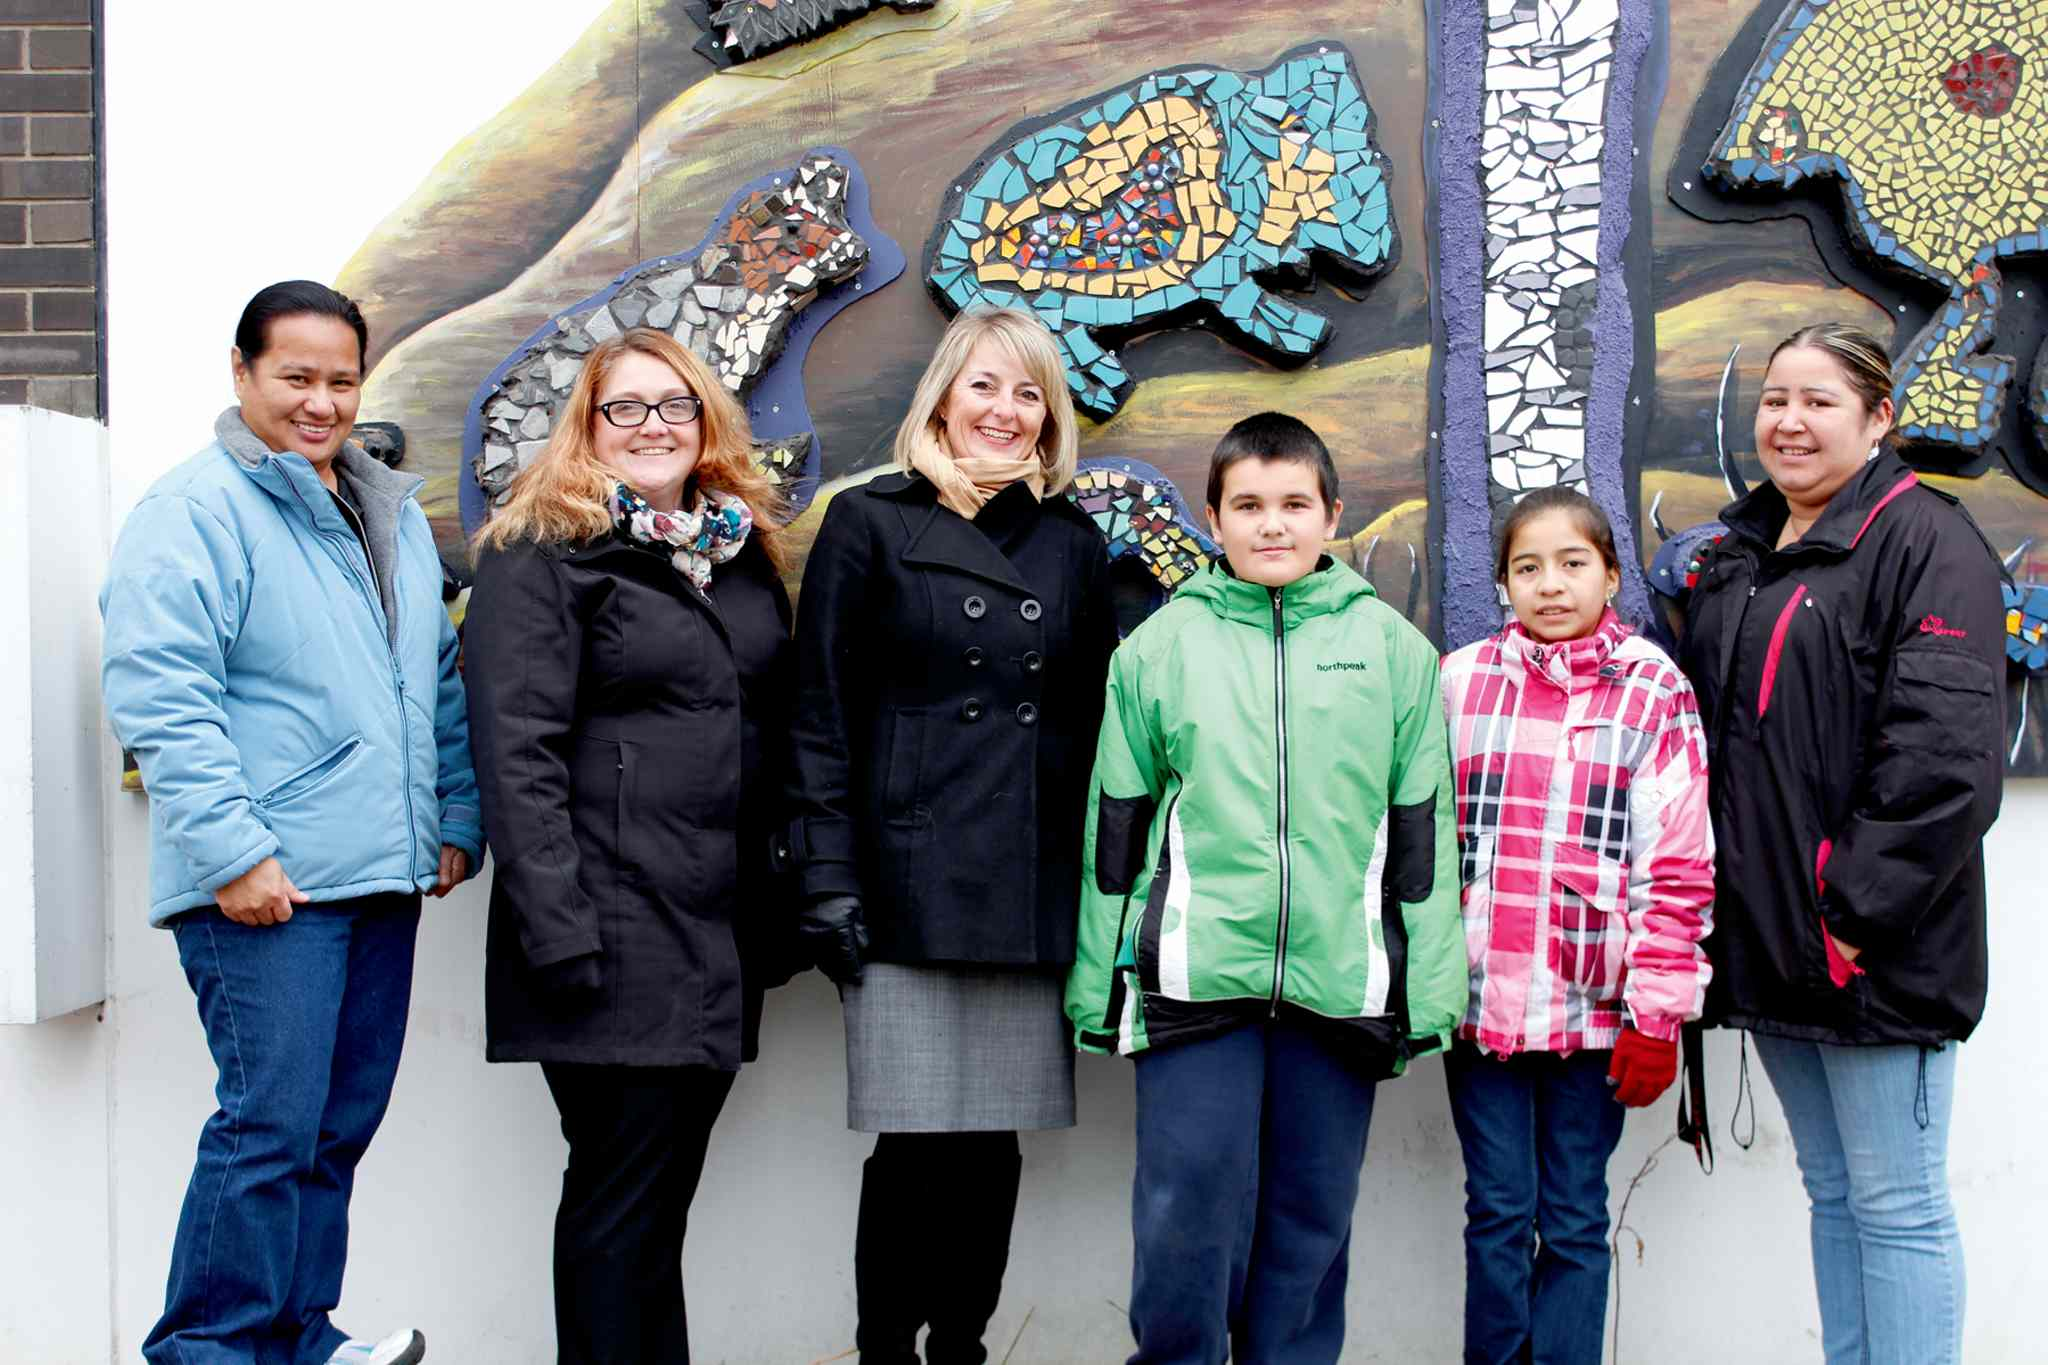 From left to right: educational assistant Melrose Bico, vice-principal Suzanne Mole, principal Brenda Langton, Grade 6 students Logan Martins and Juana Arias, and community support worker Livia Bales.